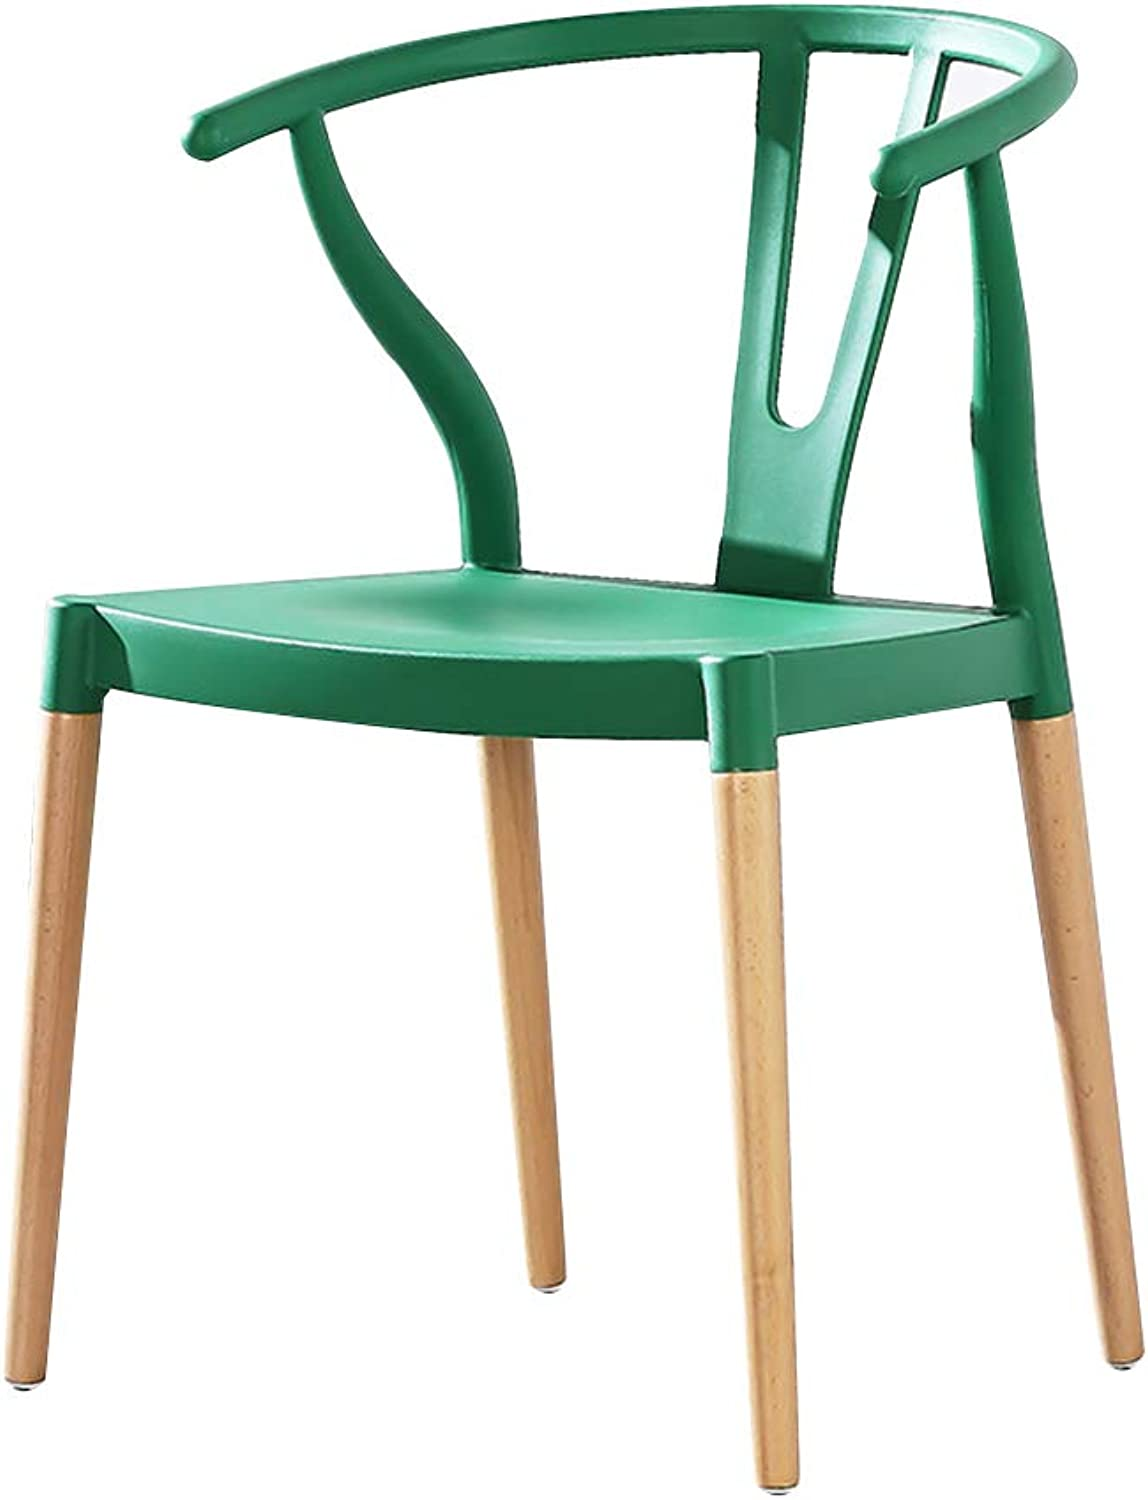 Chair Chair, with Armrests Hollow Backrest Solid Wood Chair Legs Ergonomic Curve Household Balcony Lounge Chair 7 colors (color   Green)